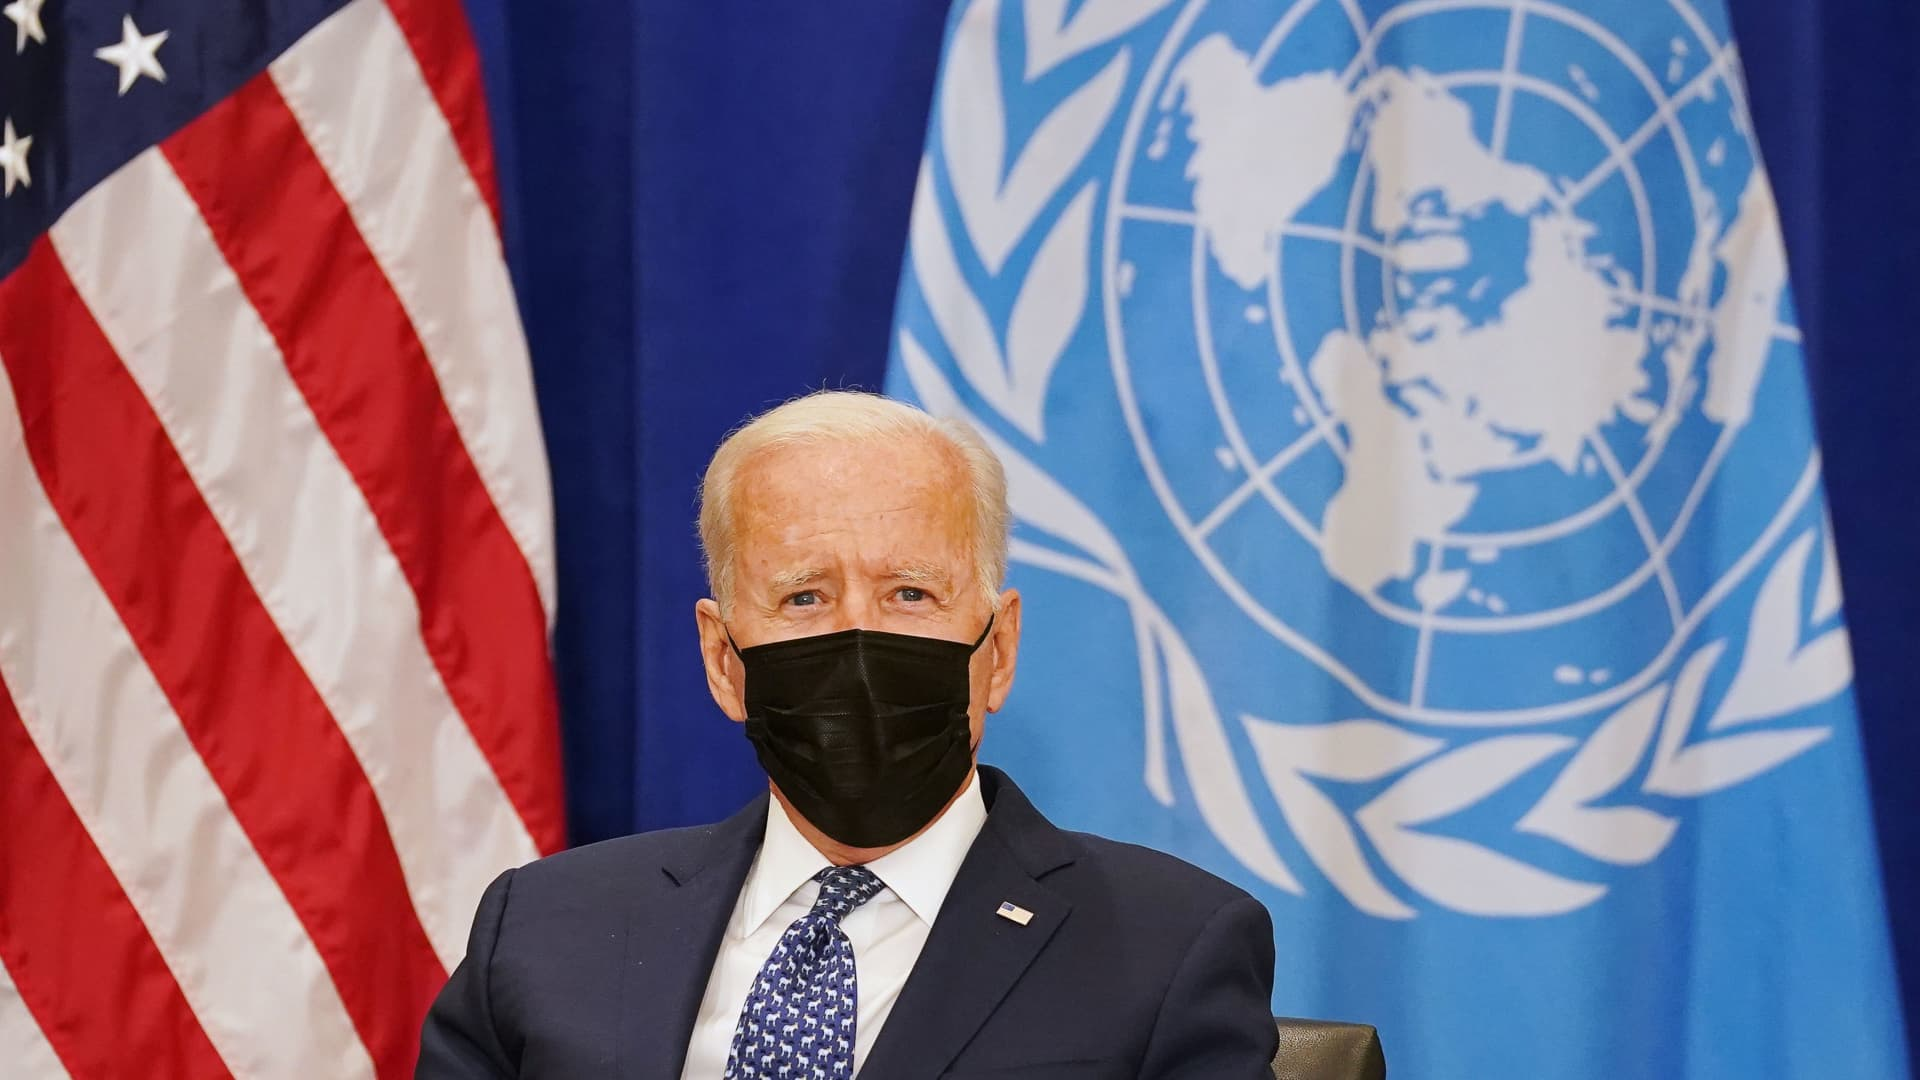 U.S. President Joe Biden meets with United Nations Secretary-General Antonio Guterres at the 76th Session of the U.N. General Assembly in New York, September 20, 2021.